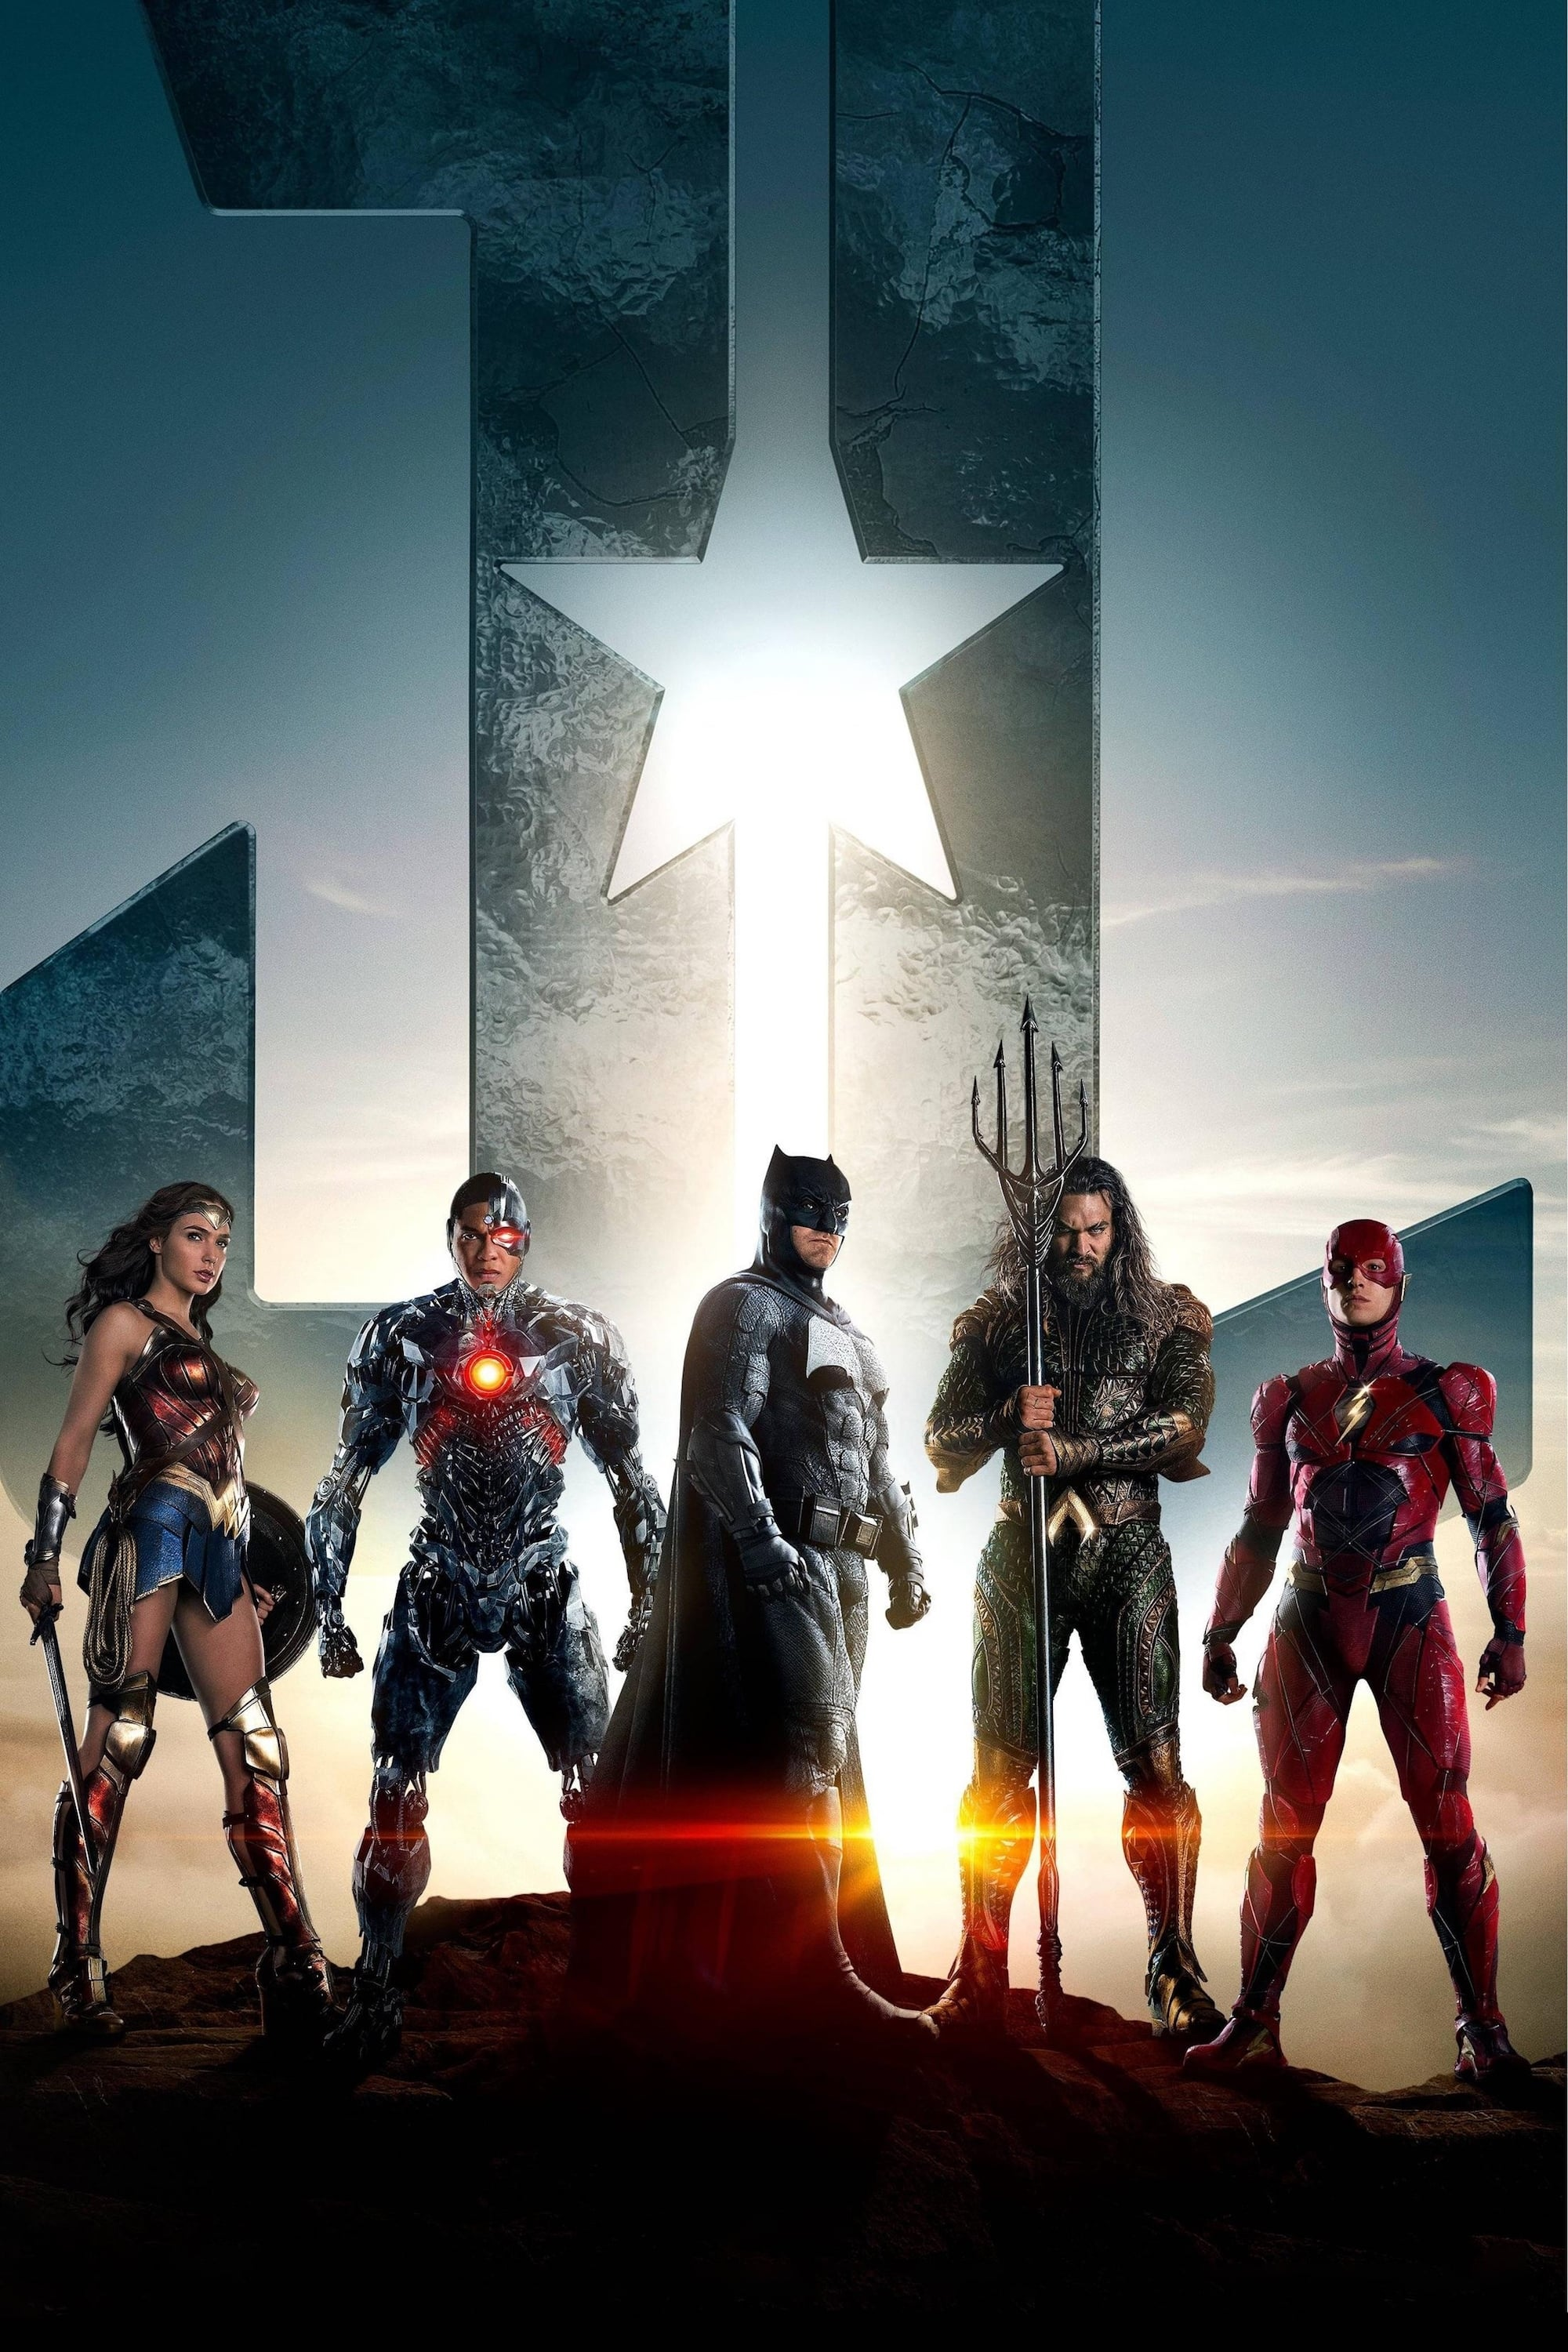 Poster and image movie Film Liga Dreptatii - Liga dreptății - Justice League - Justice League -  2017